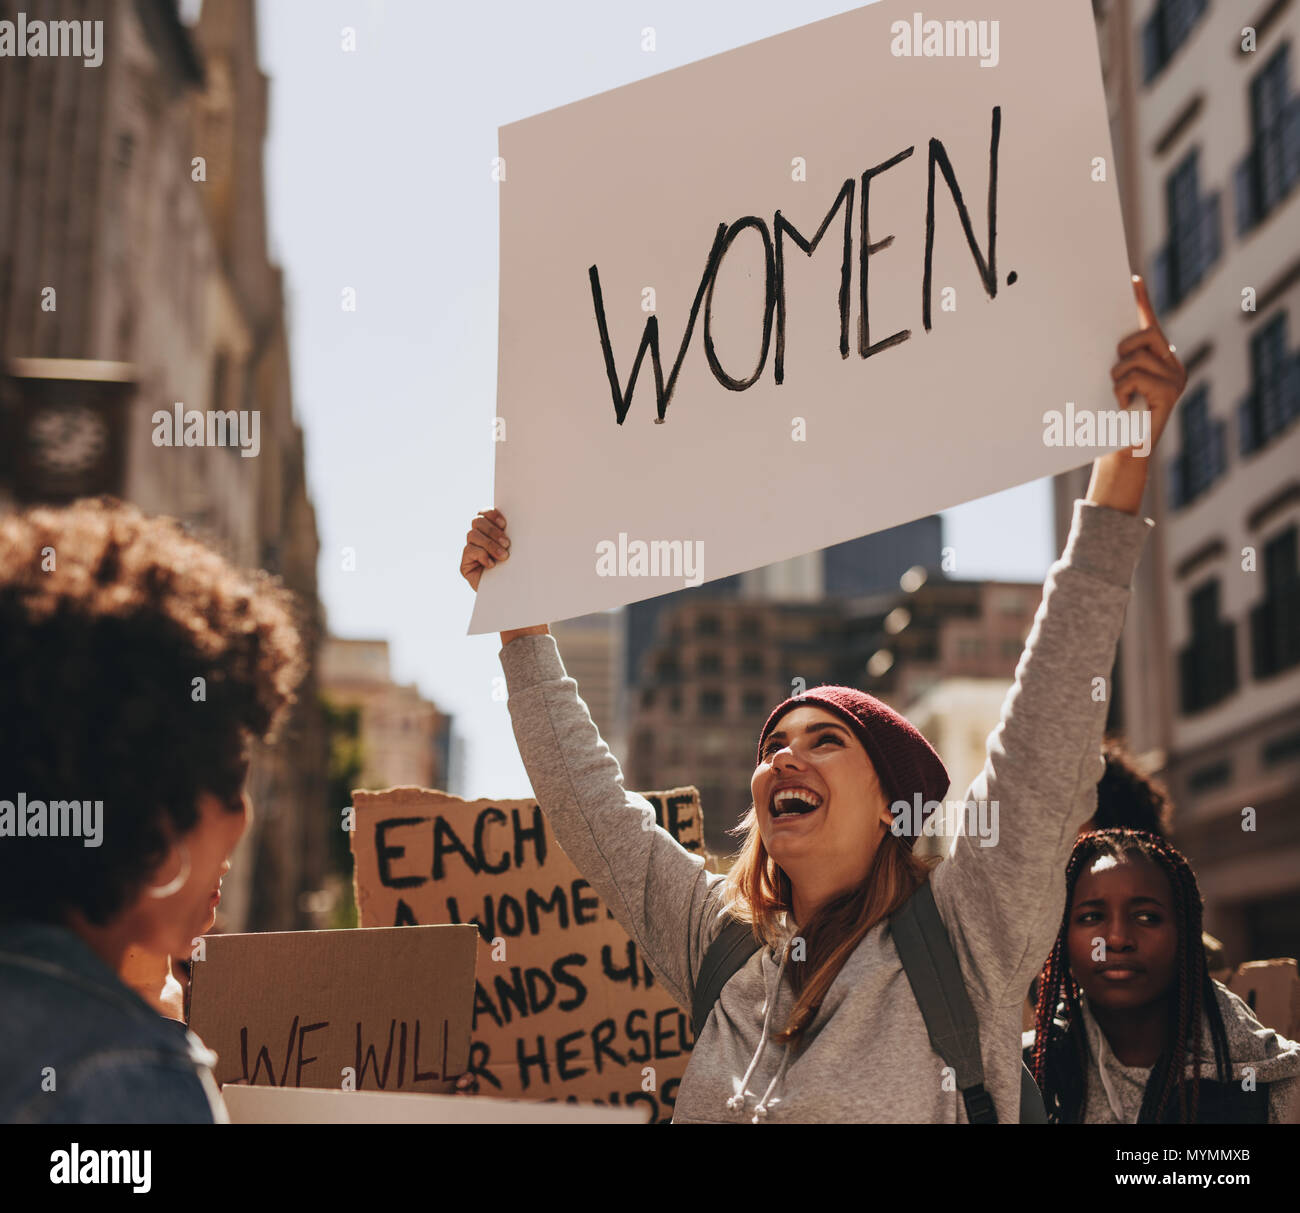 Happy young woman hand written protest sign at women's march. Group of females demonstrating outdoors. Stock Photo